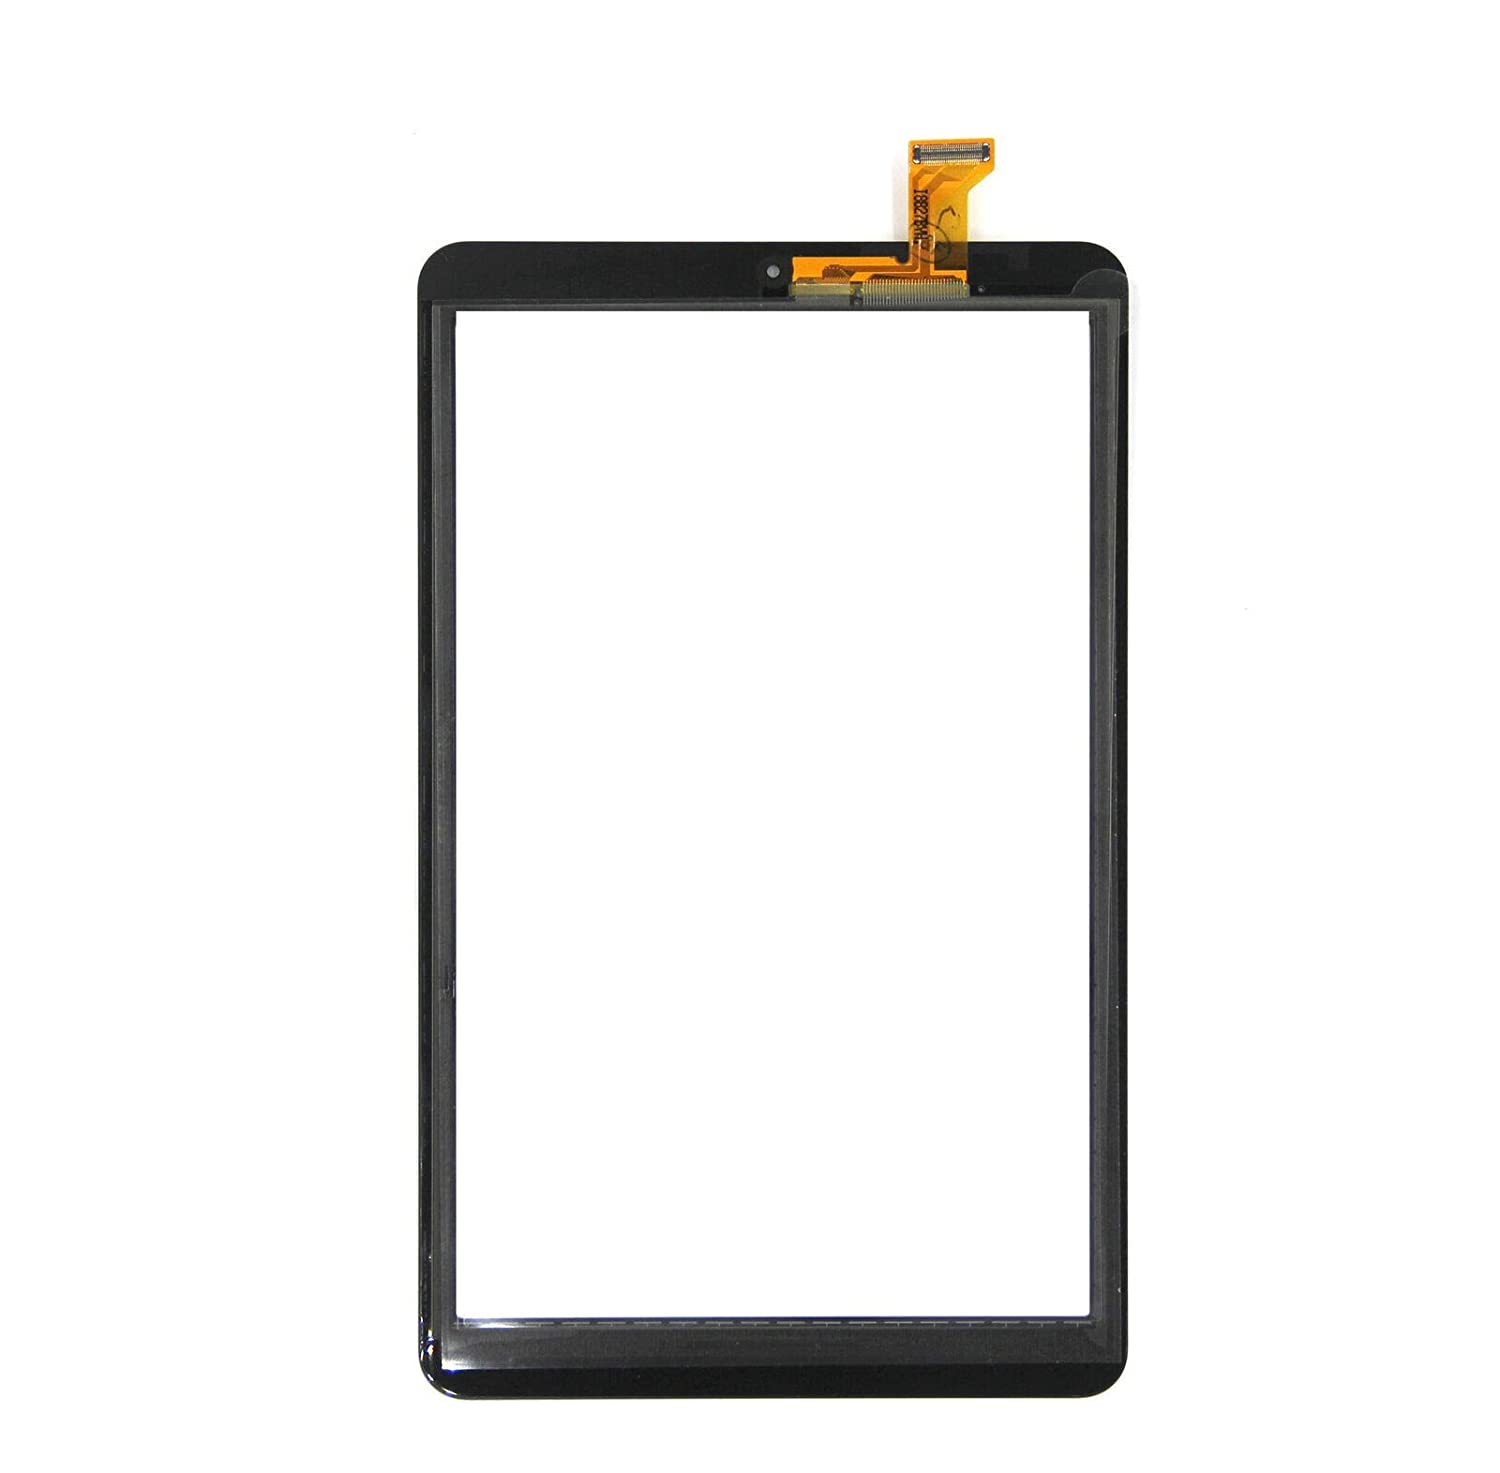 No LCD BESTeck Compatible for Samsung Galaxy Tab A 8.0 T387 SM-T387P SM-T387V T387A Digitizer Touch Screen